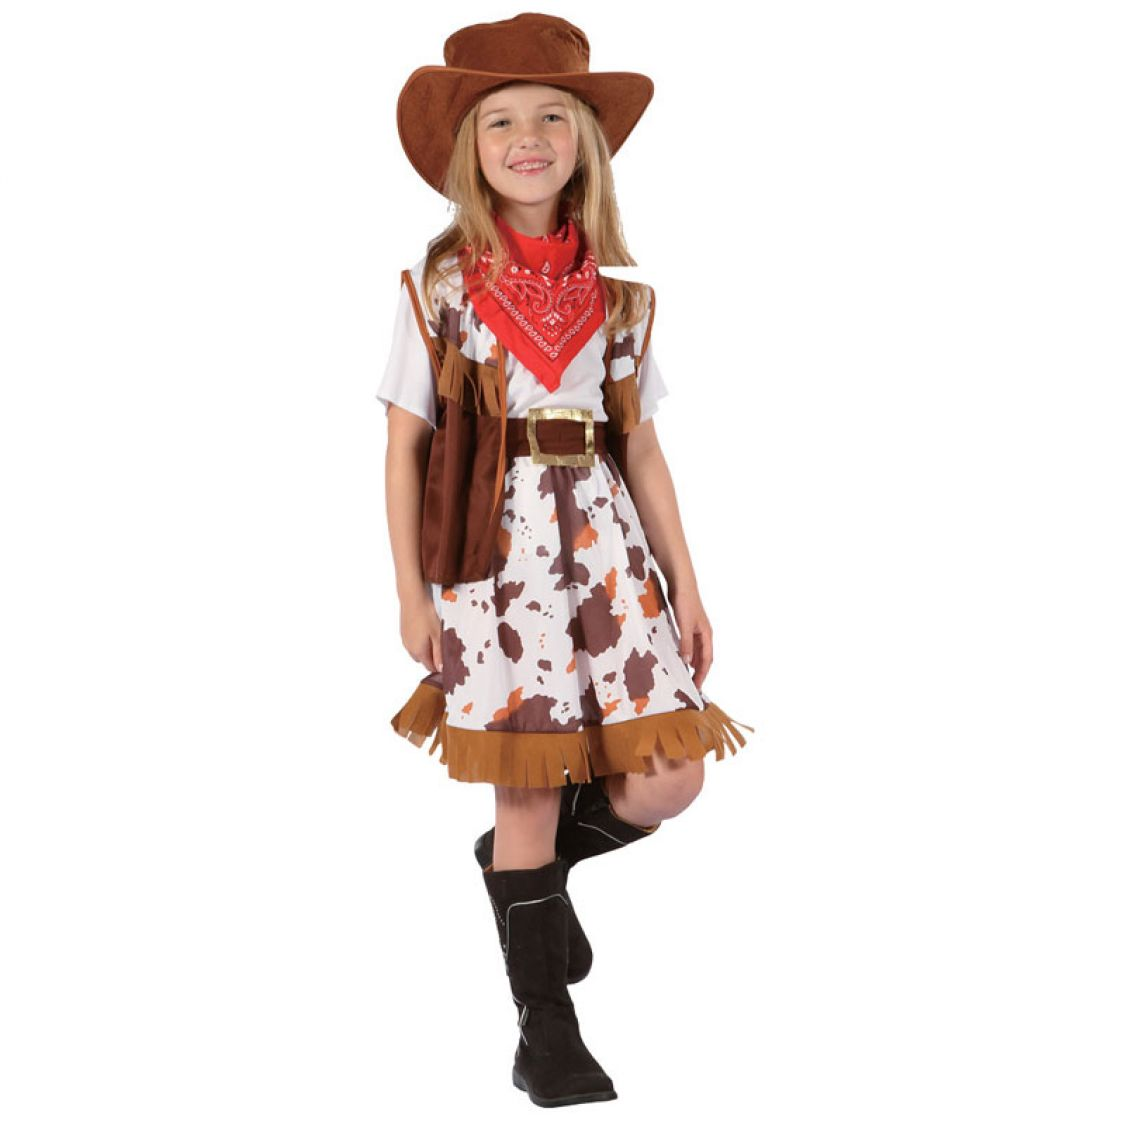 D guisement gar on cow boy - Deguisement cowgirl fille ...